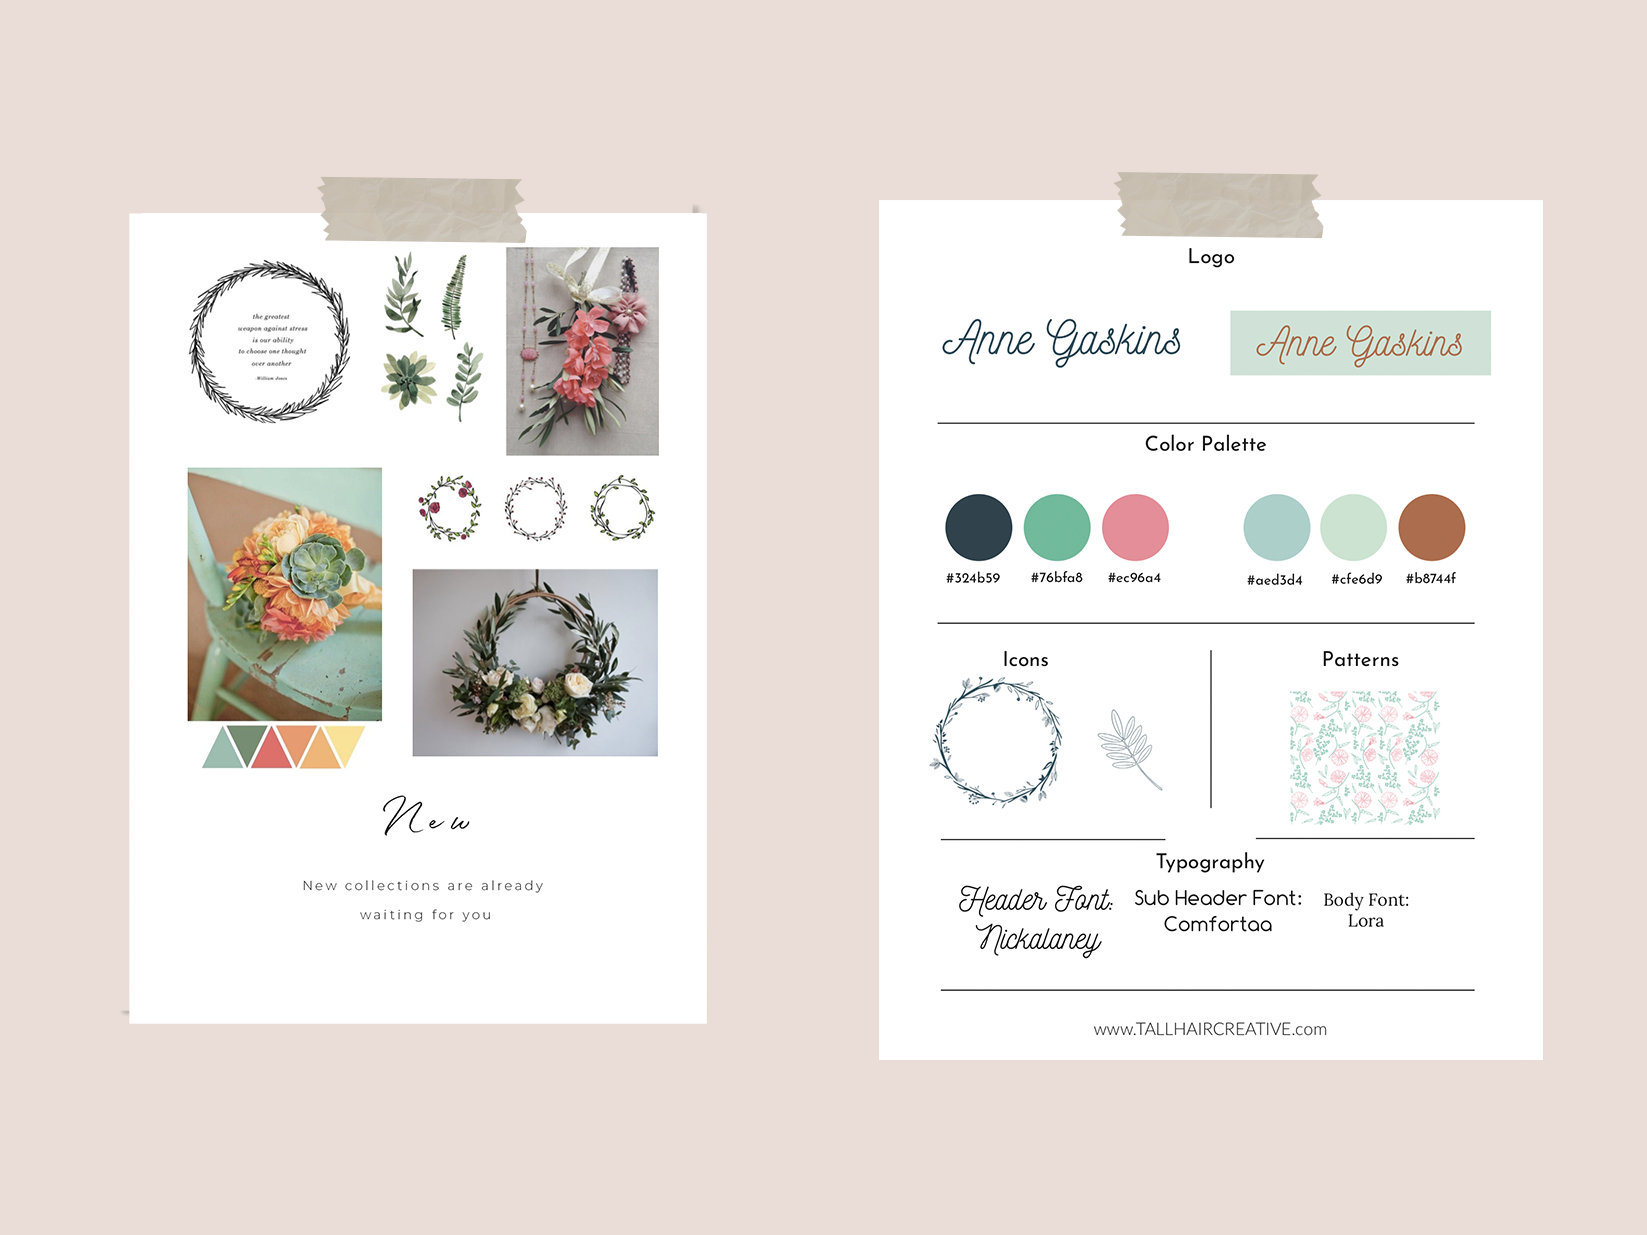 Anne Gaskins Brand Style Guide Mock Up.png